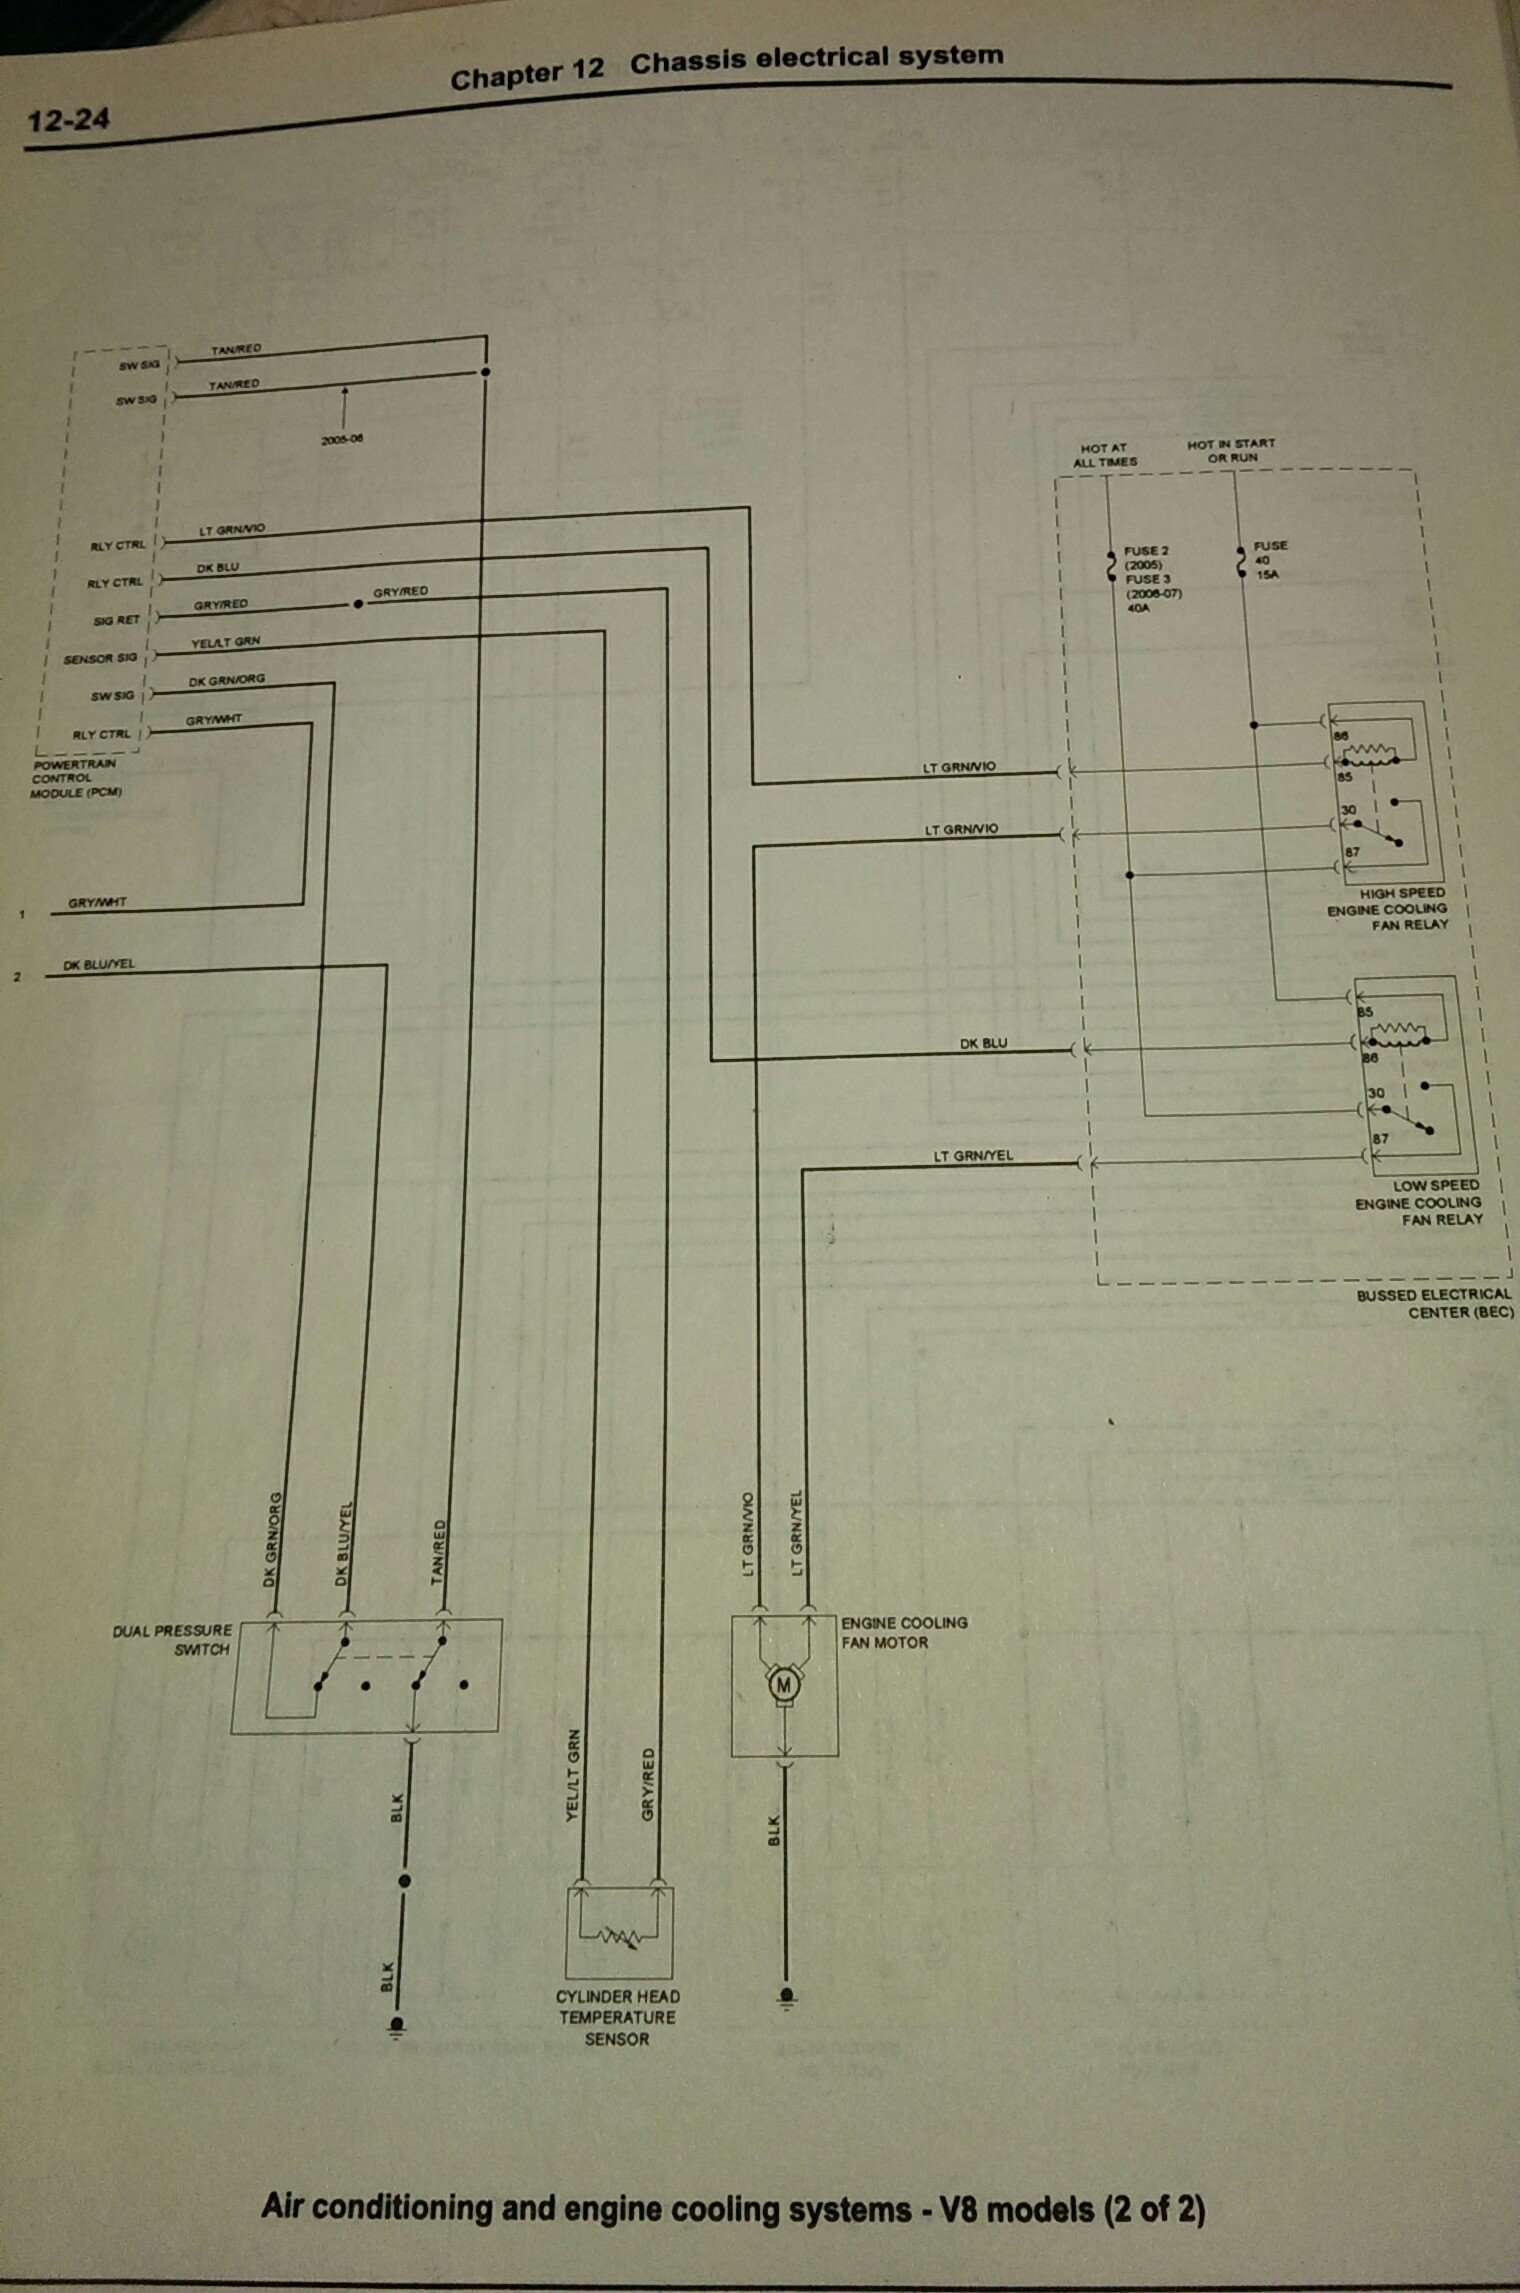 1995 mustang gt radiator fan wiring diagram cooling fan high speed mode not working ford mustang forum  cooling fan high speed mode not working